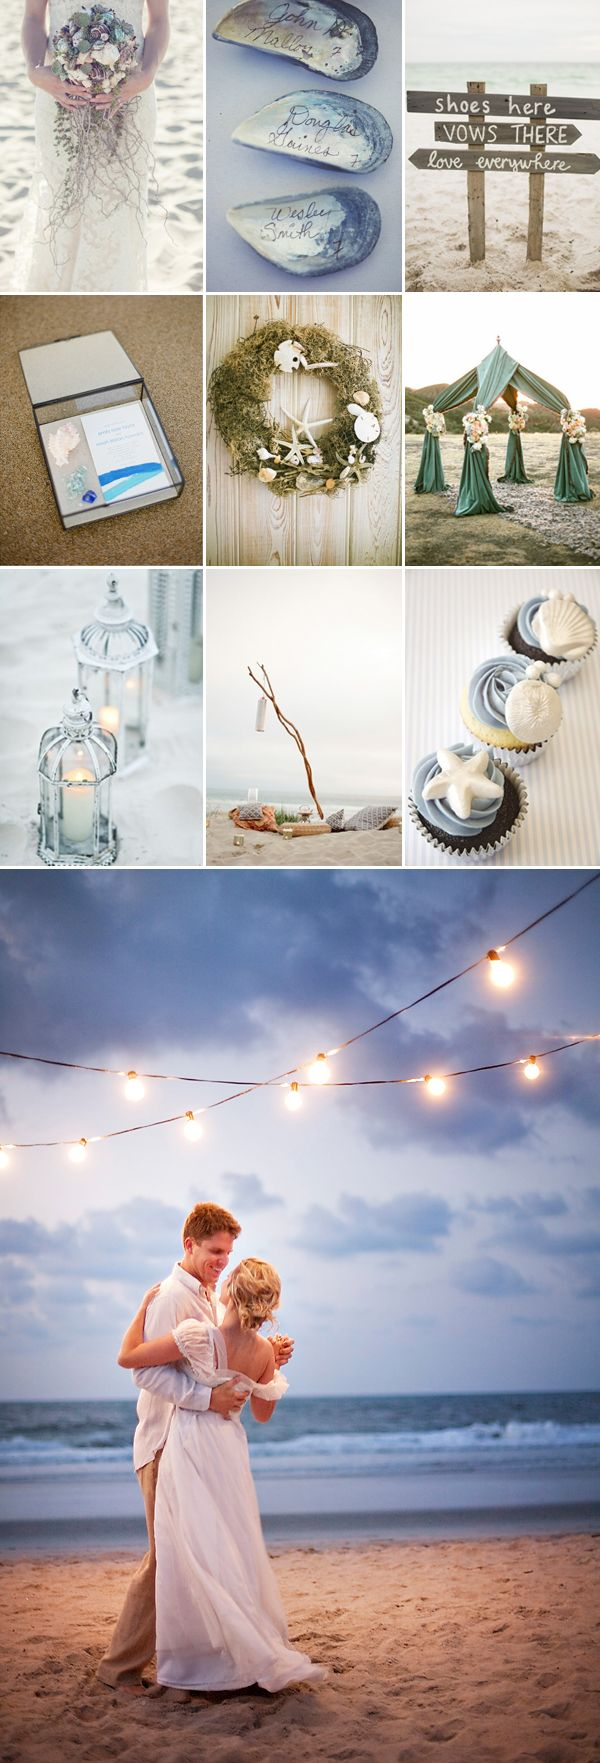 Beach Seaside Wedding Inspiration Board